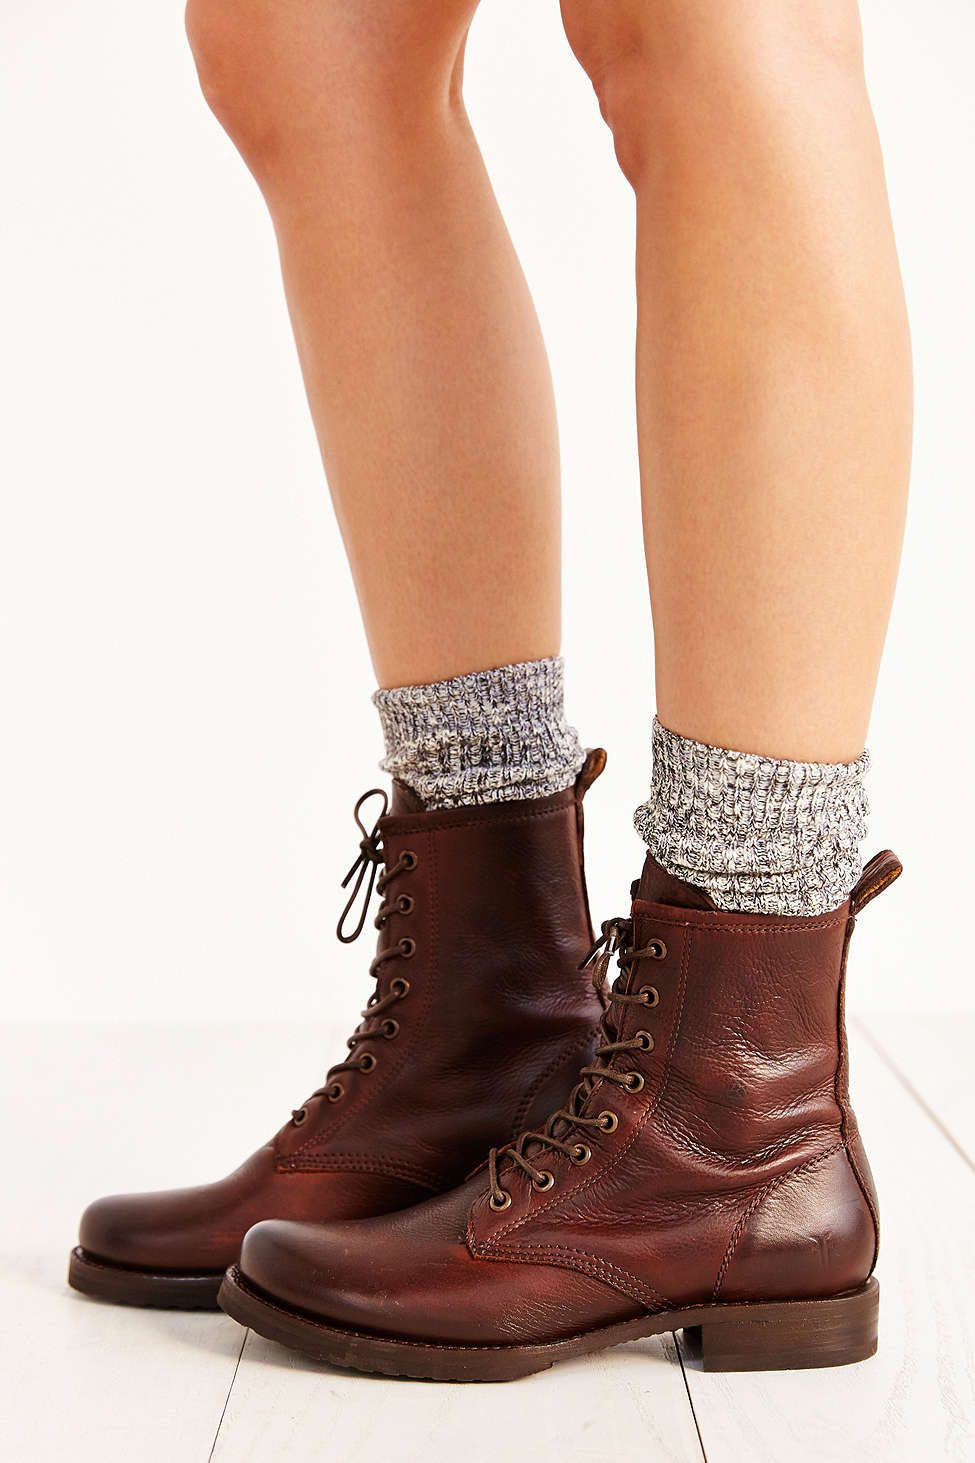 9323085ddea Frye Veronica Combat Boot | The Body Shop | Combat boots, Frye ...